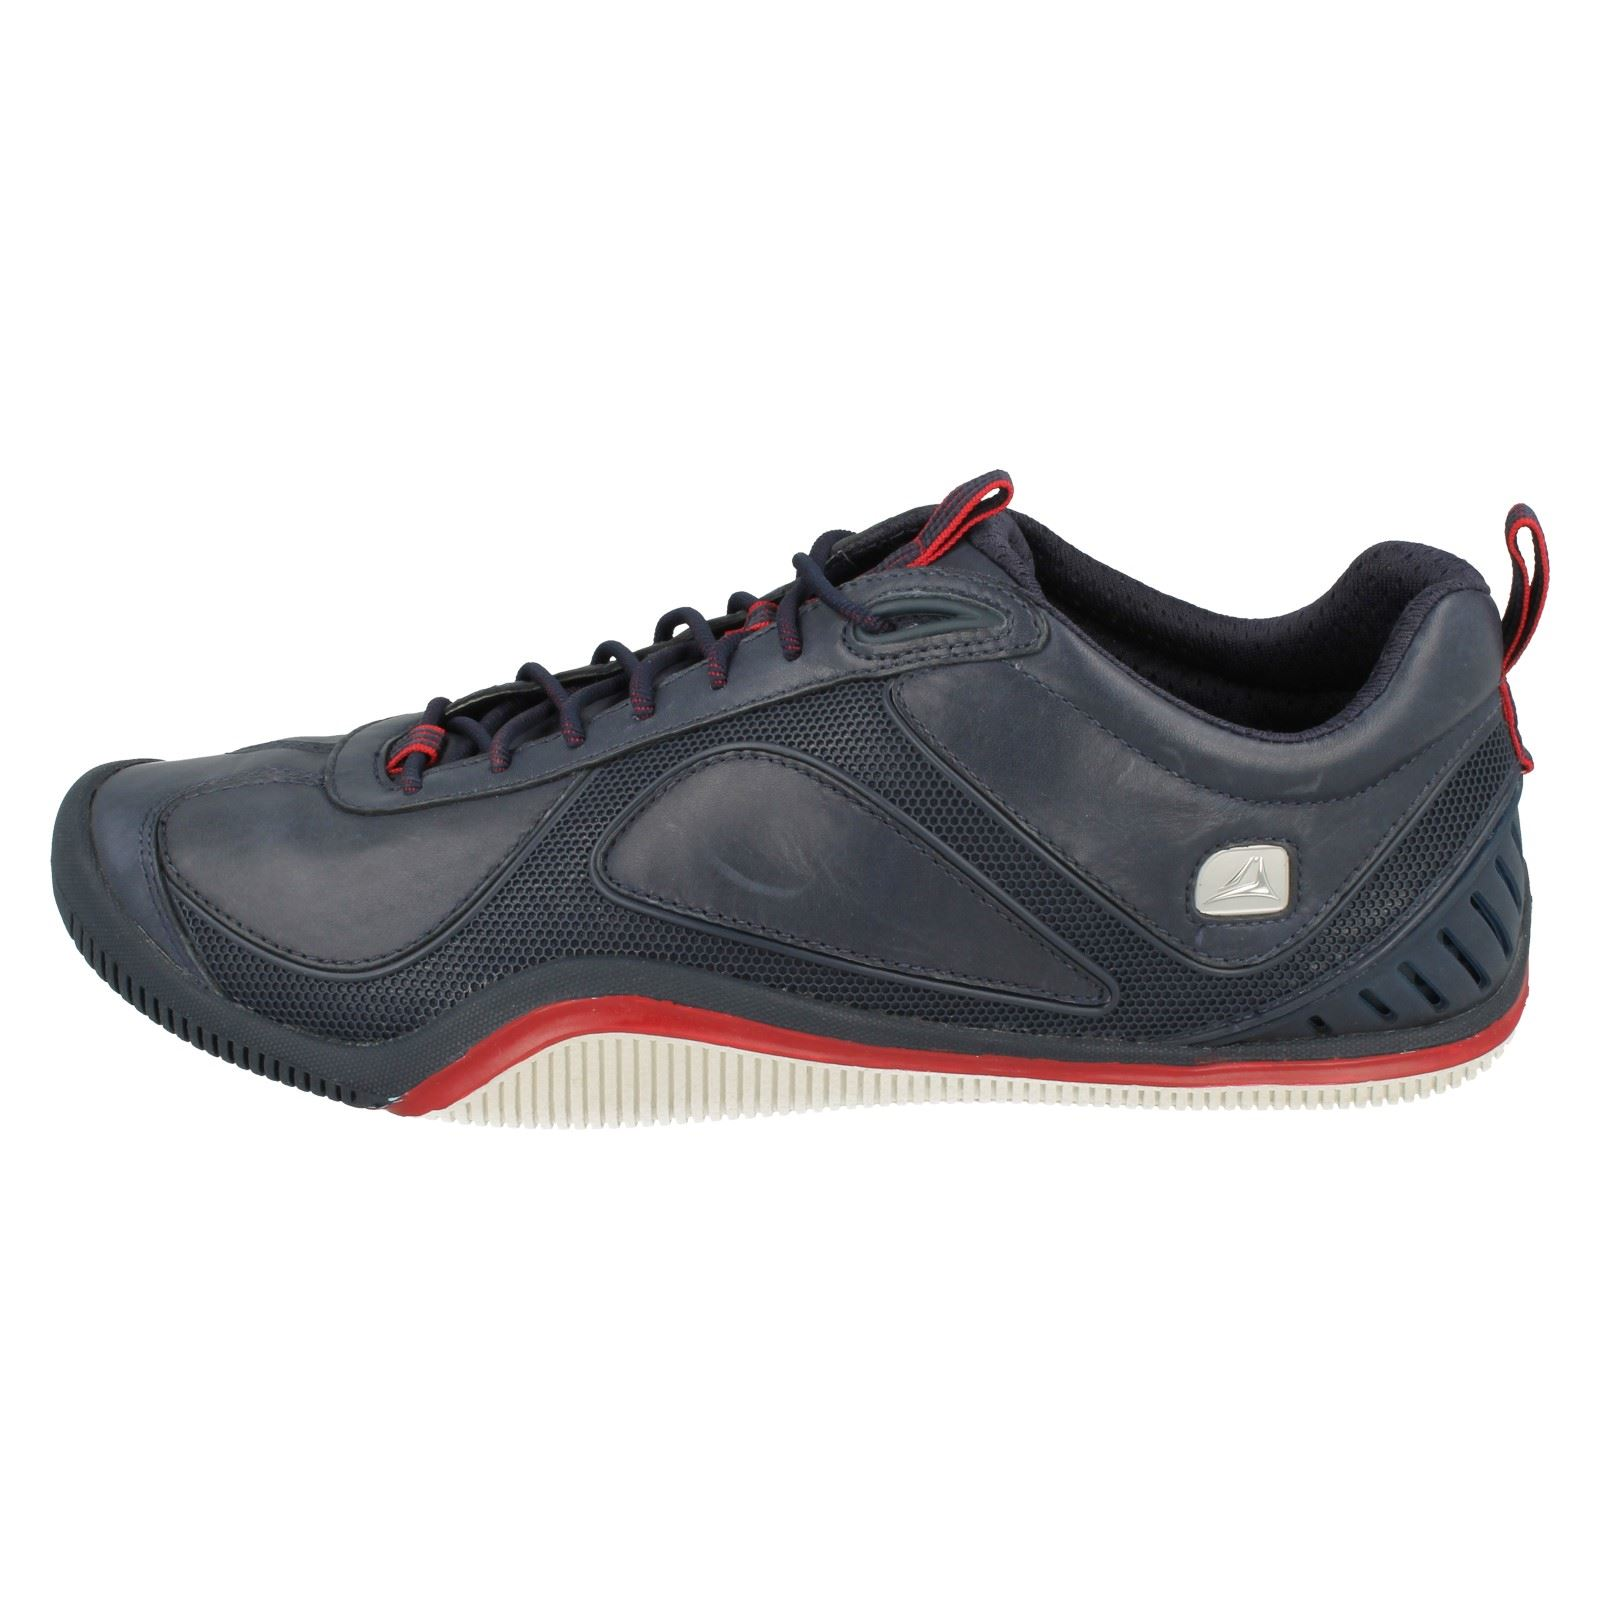 Mens Clarks Casual Lace Up Shoes Outdrive Tide